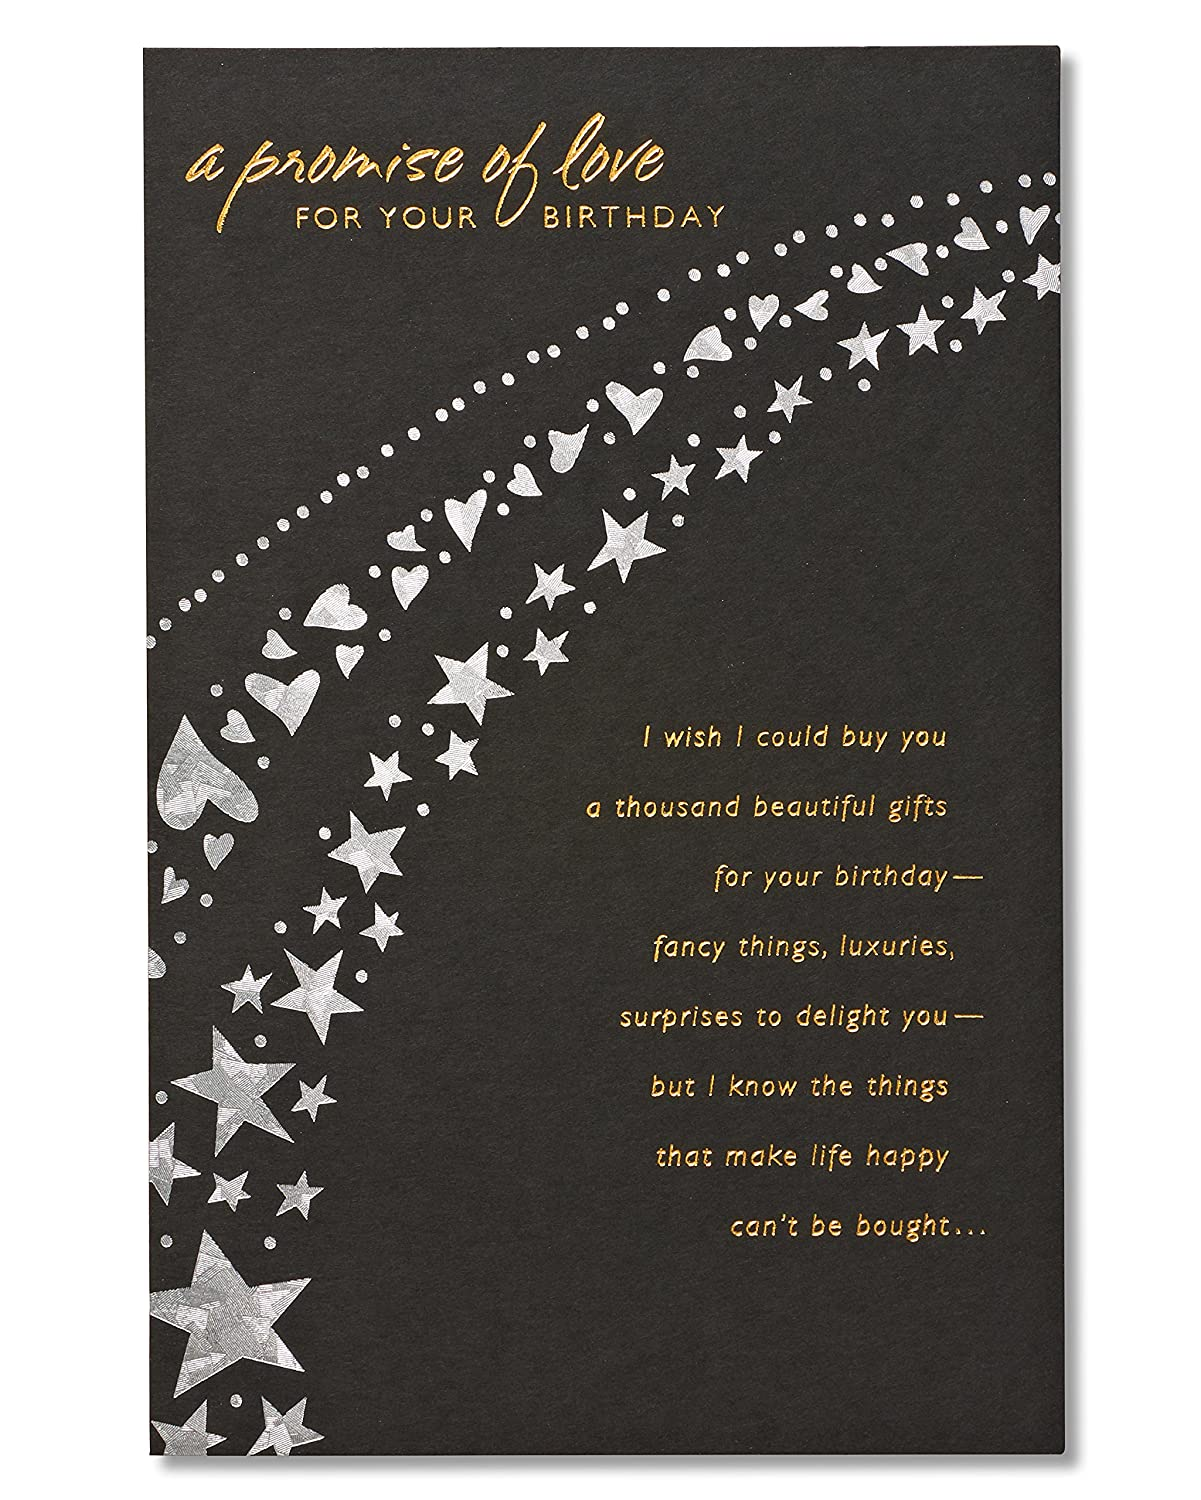 Amazon american greetings a promise of love birthday card for amazon american greetings a promise of love birthday card for sweetheart with foil american greetings office products kristyandbryce Choice Image